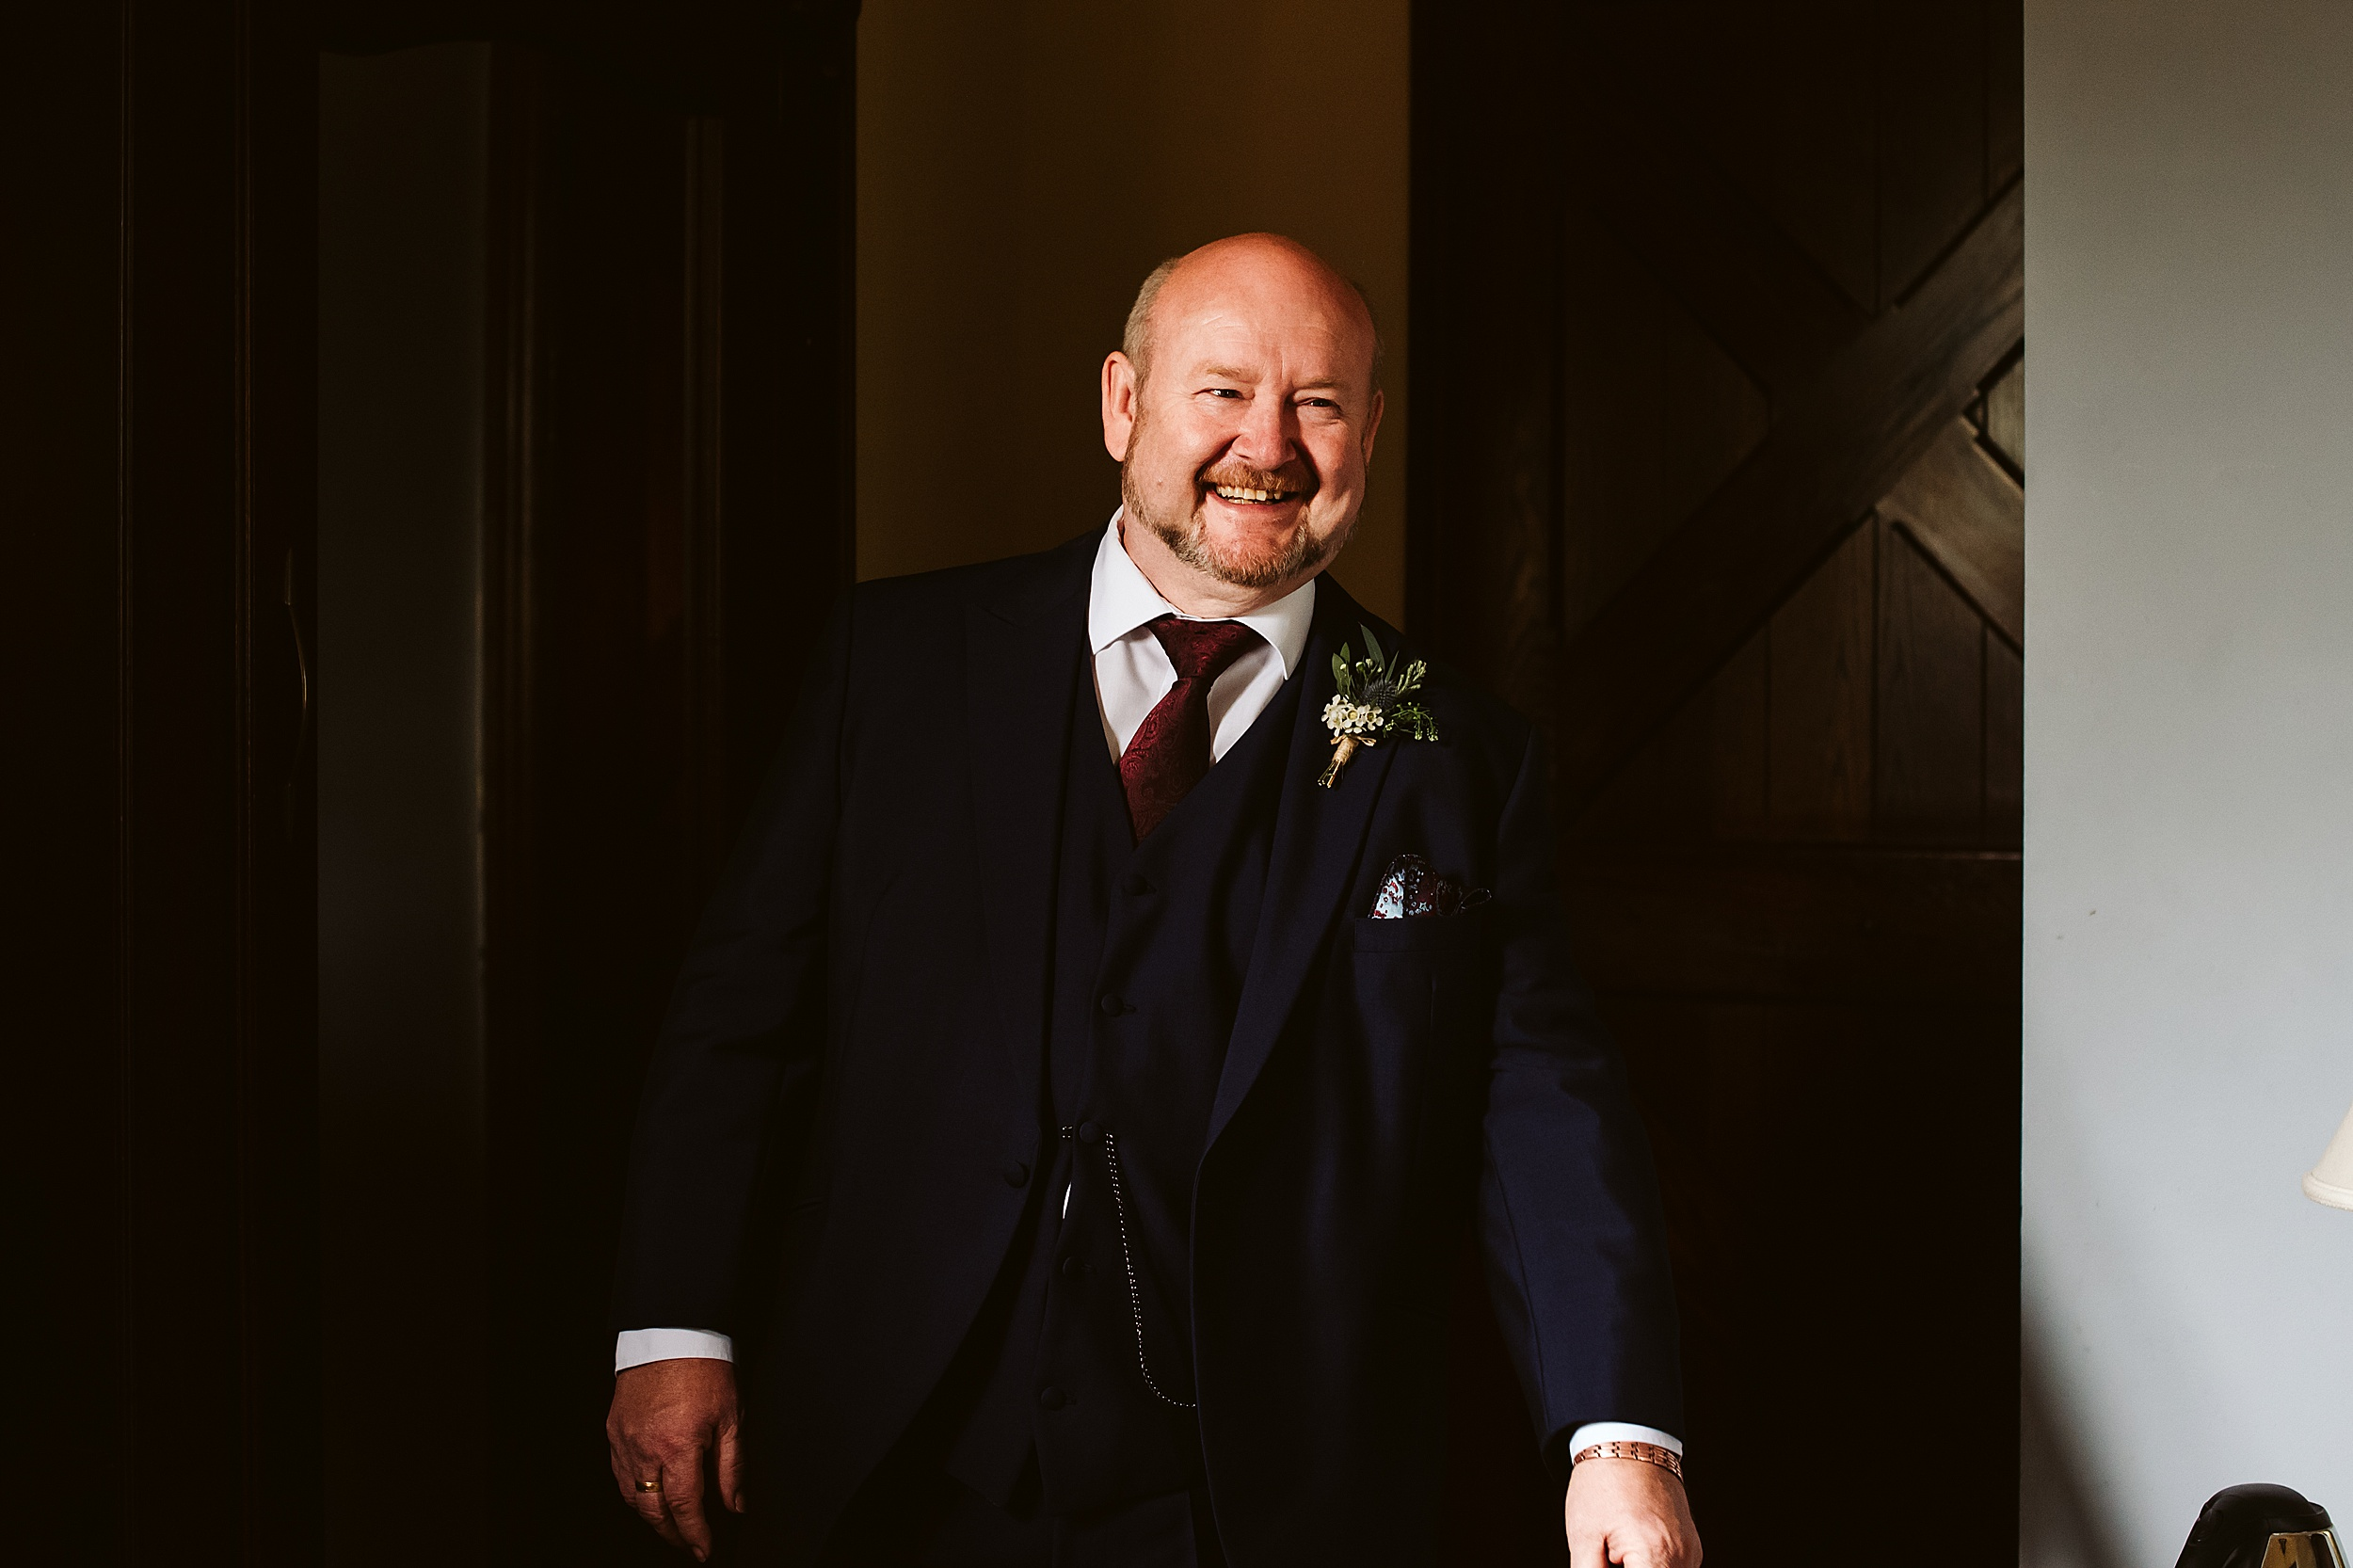 Peckforton_Castle_Cheshire_Toronto_Wedding_Photographer_UK_Destination_Wedding_0018.jpg